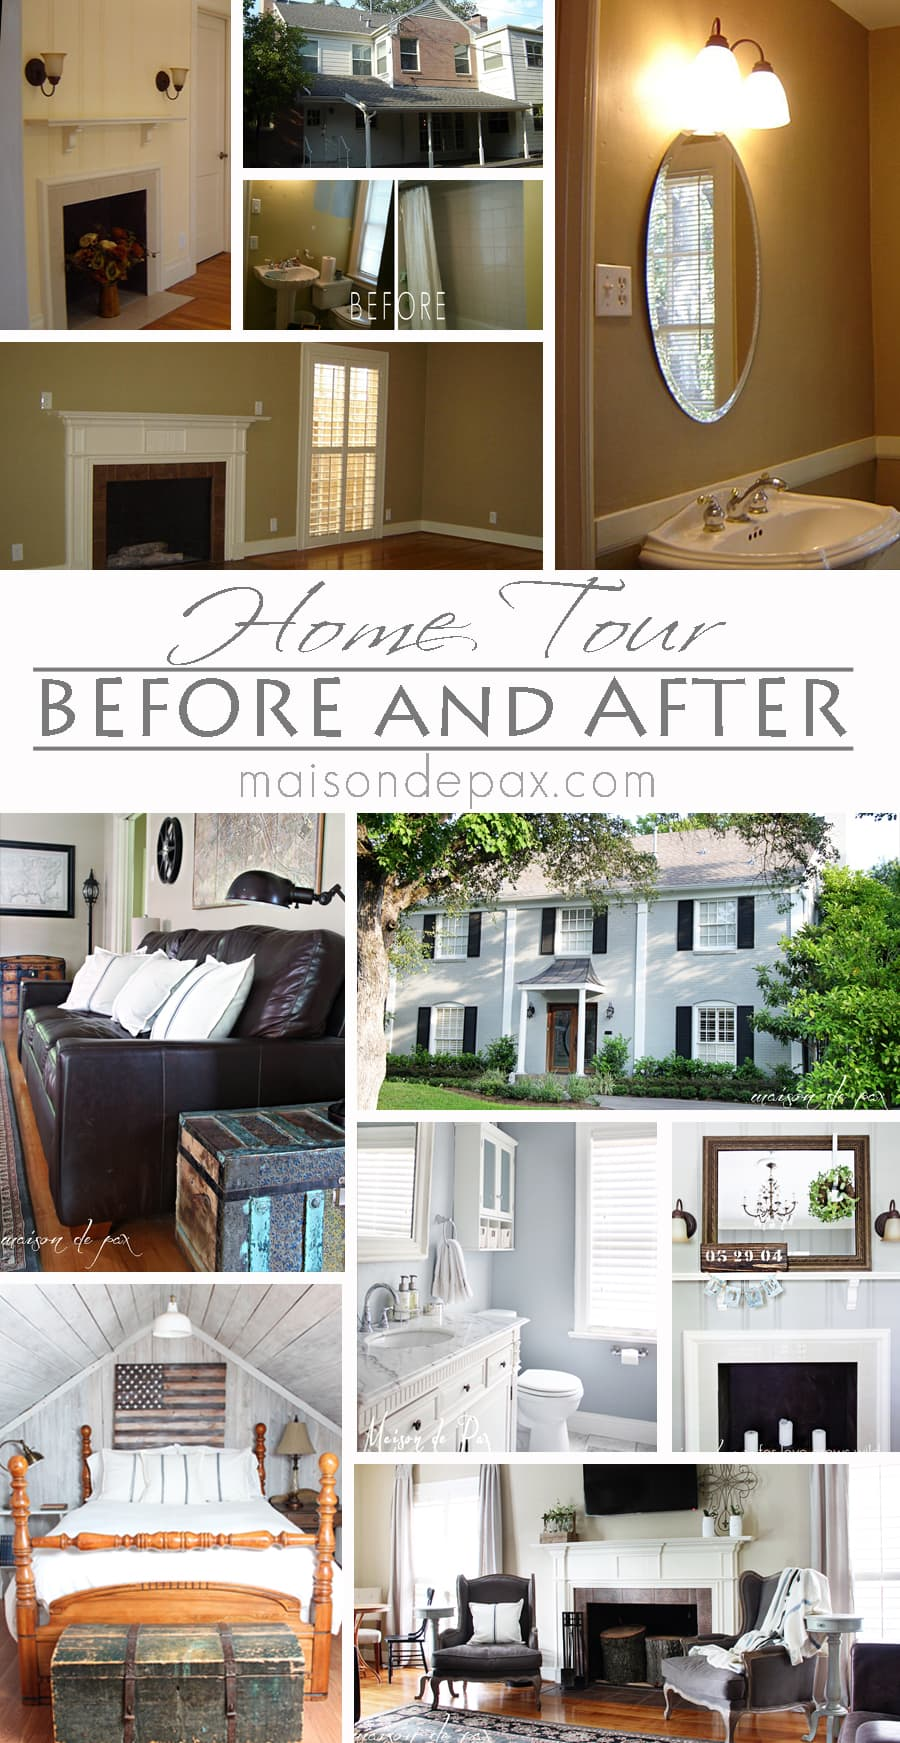 Before and After House Tour